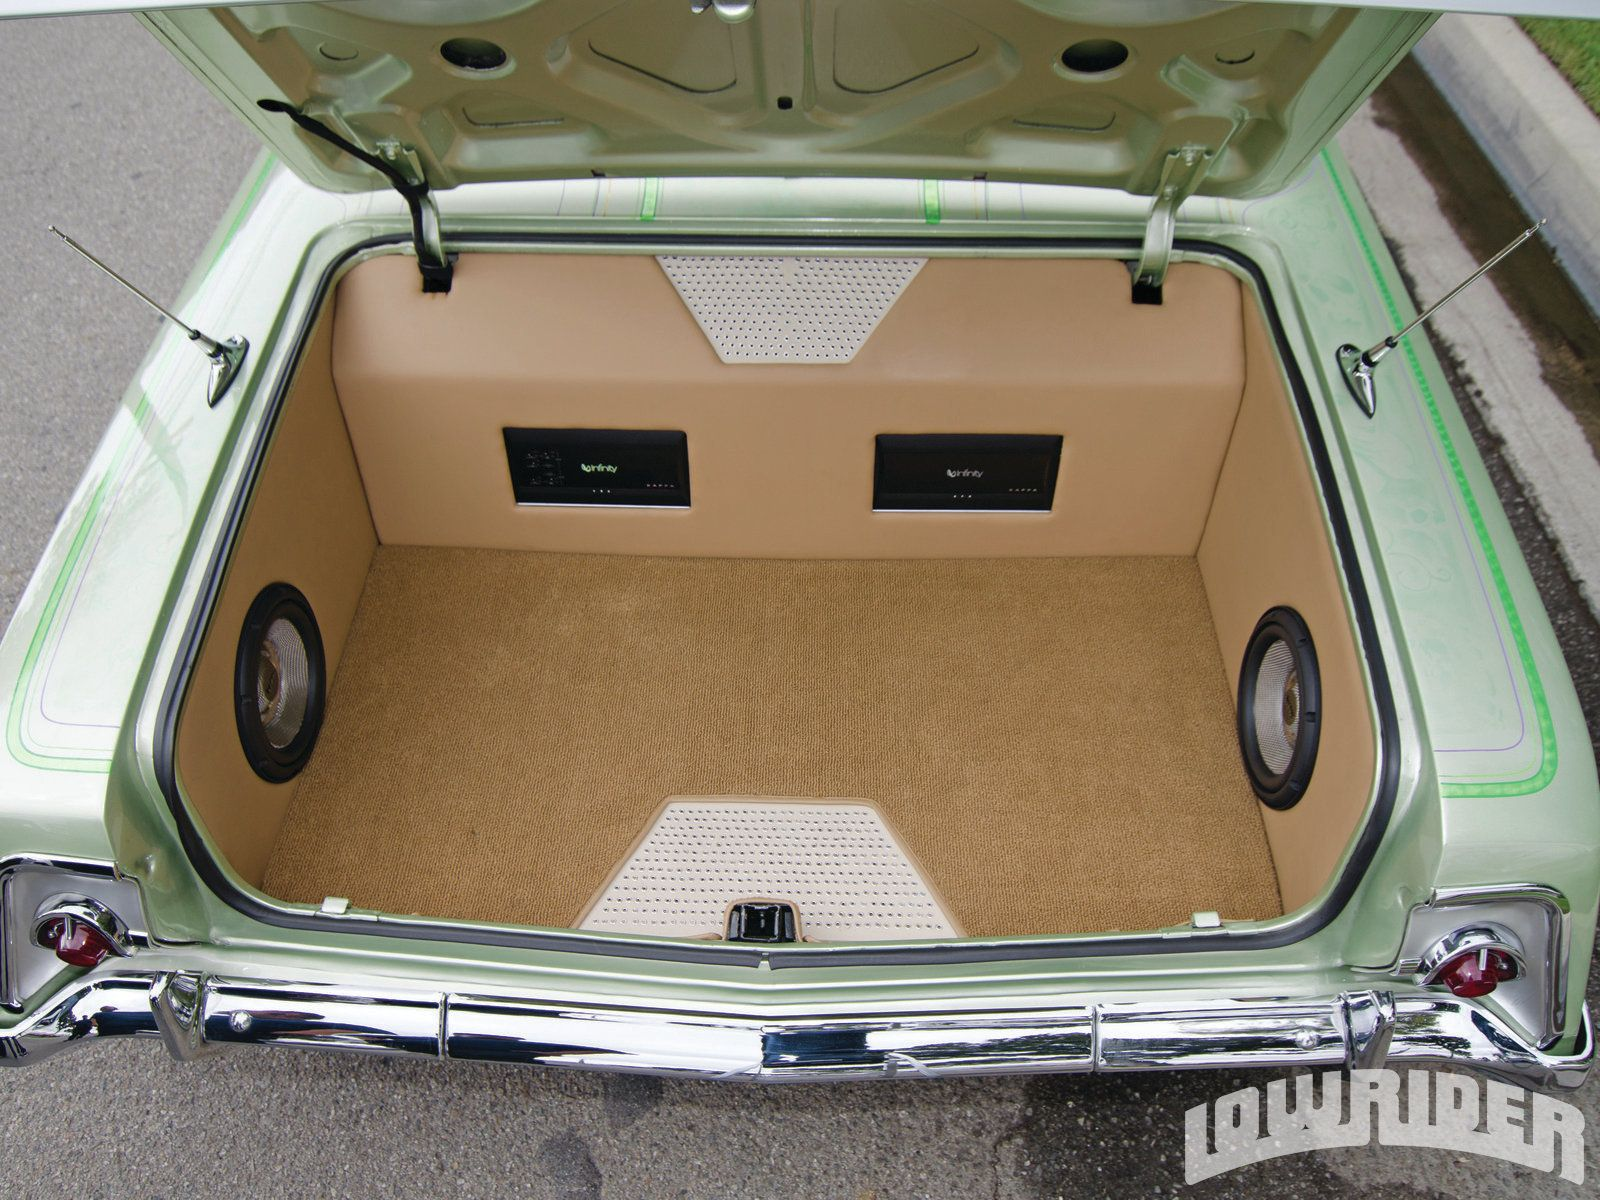 05 1962 Chevrolet Impala Custom Monitor And Speaker Setup Custom Car Interior Car Audio Systems Custom Car Audio